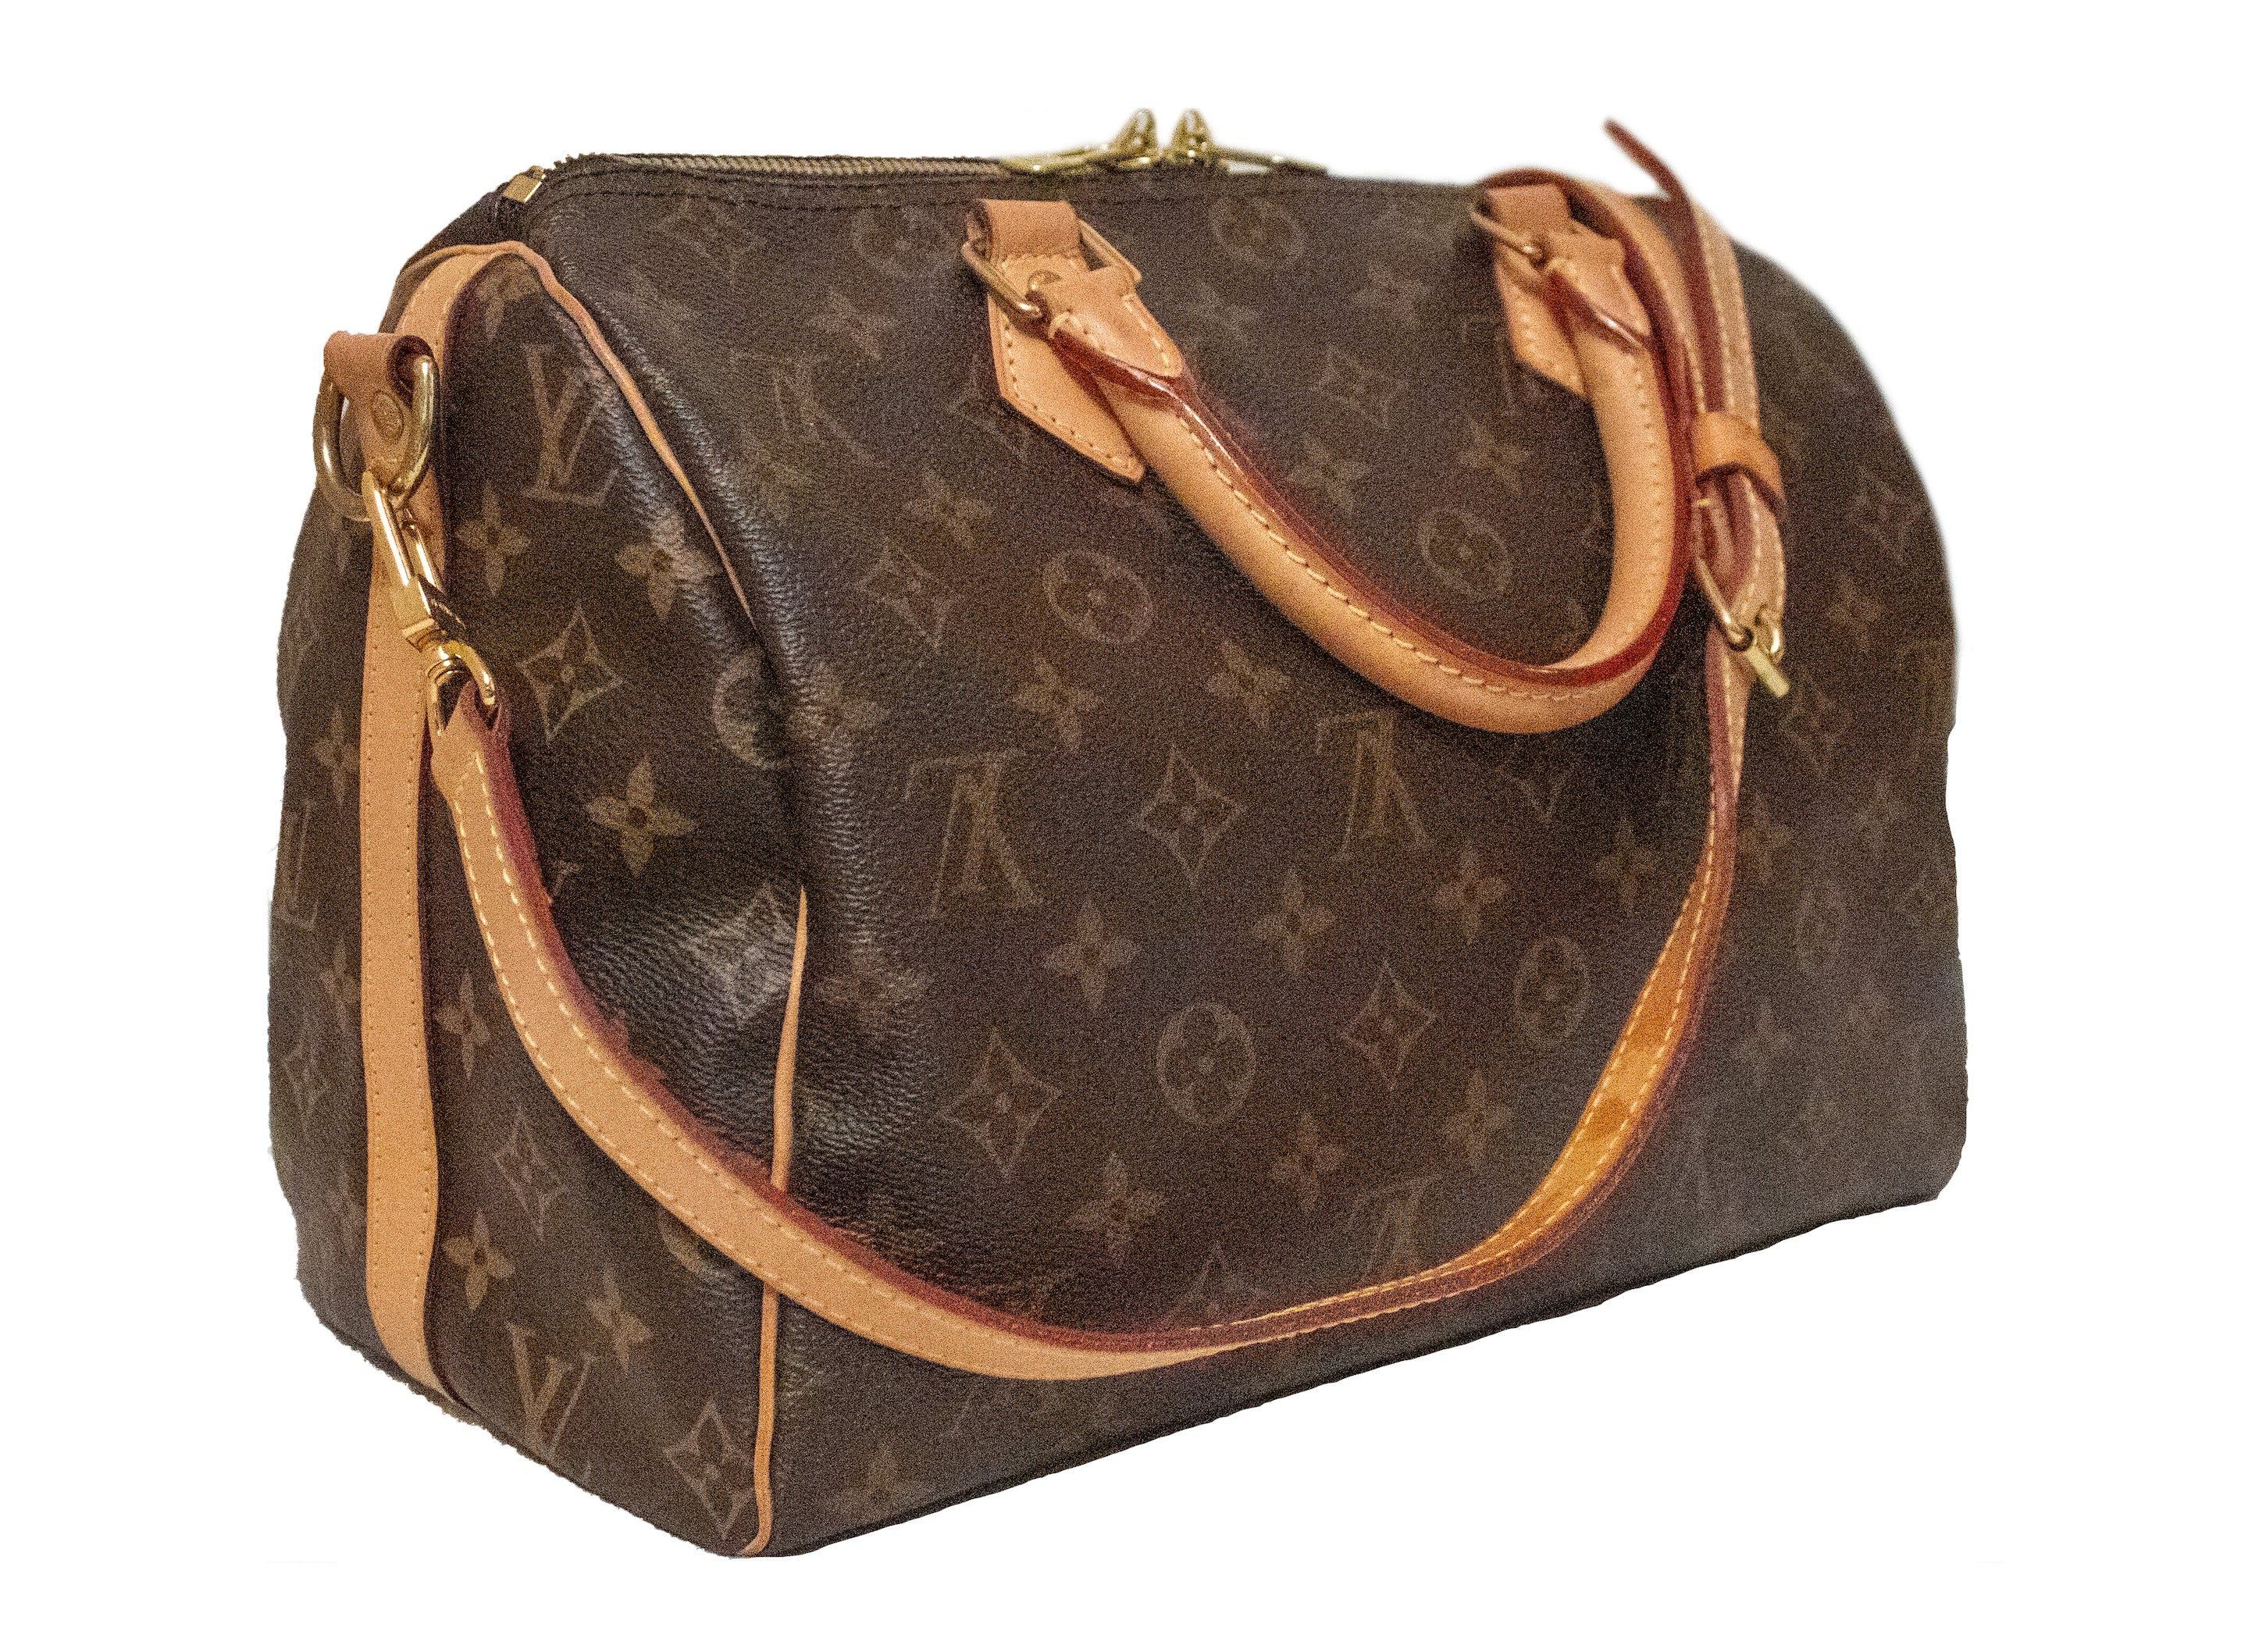 Authentic Louis Vuitton Classic Monogram Speedy 30 Bandouliere Bag